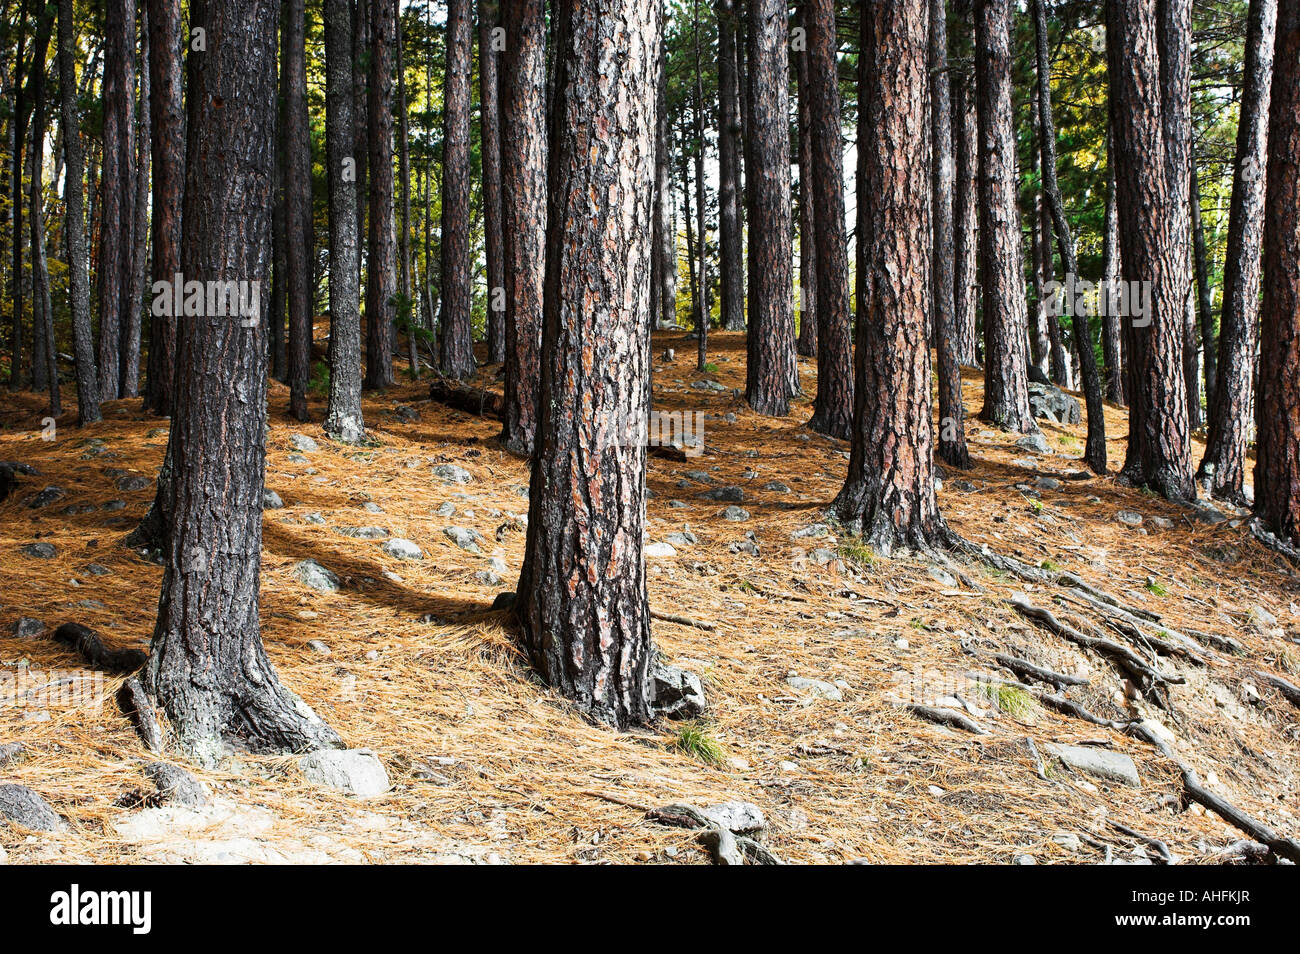 A stand of red pine trees Pinnus resinosa AKA Norway pine in Bear Head Lake State Park near Ely Minnesota - Stock Image